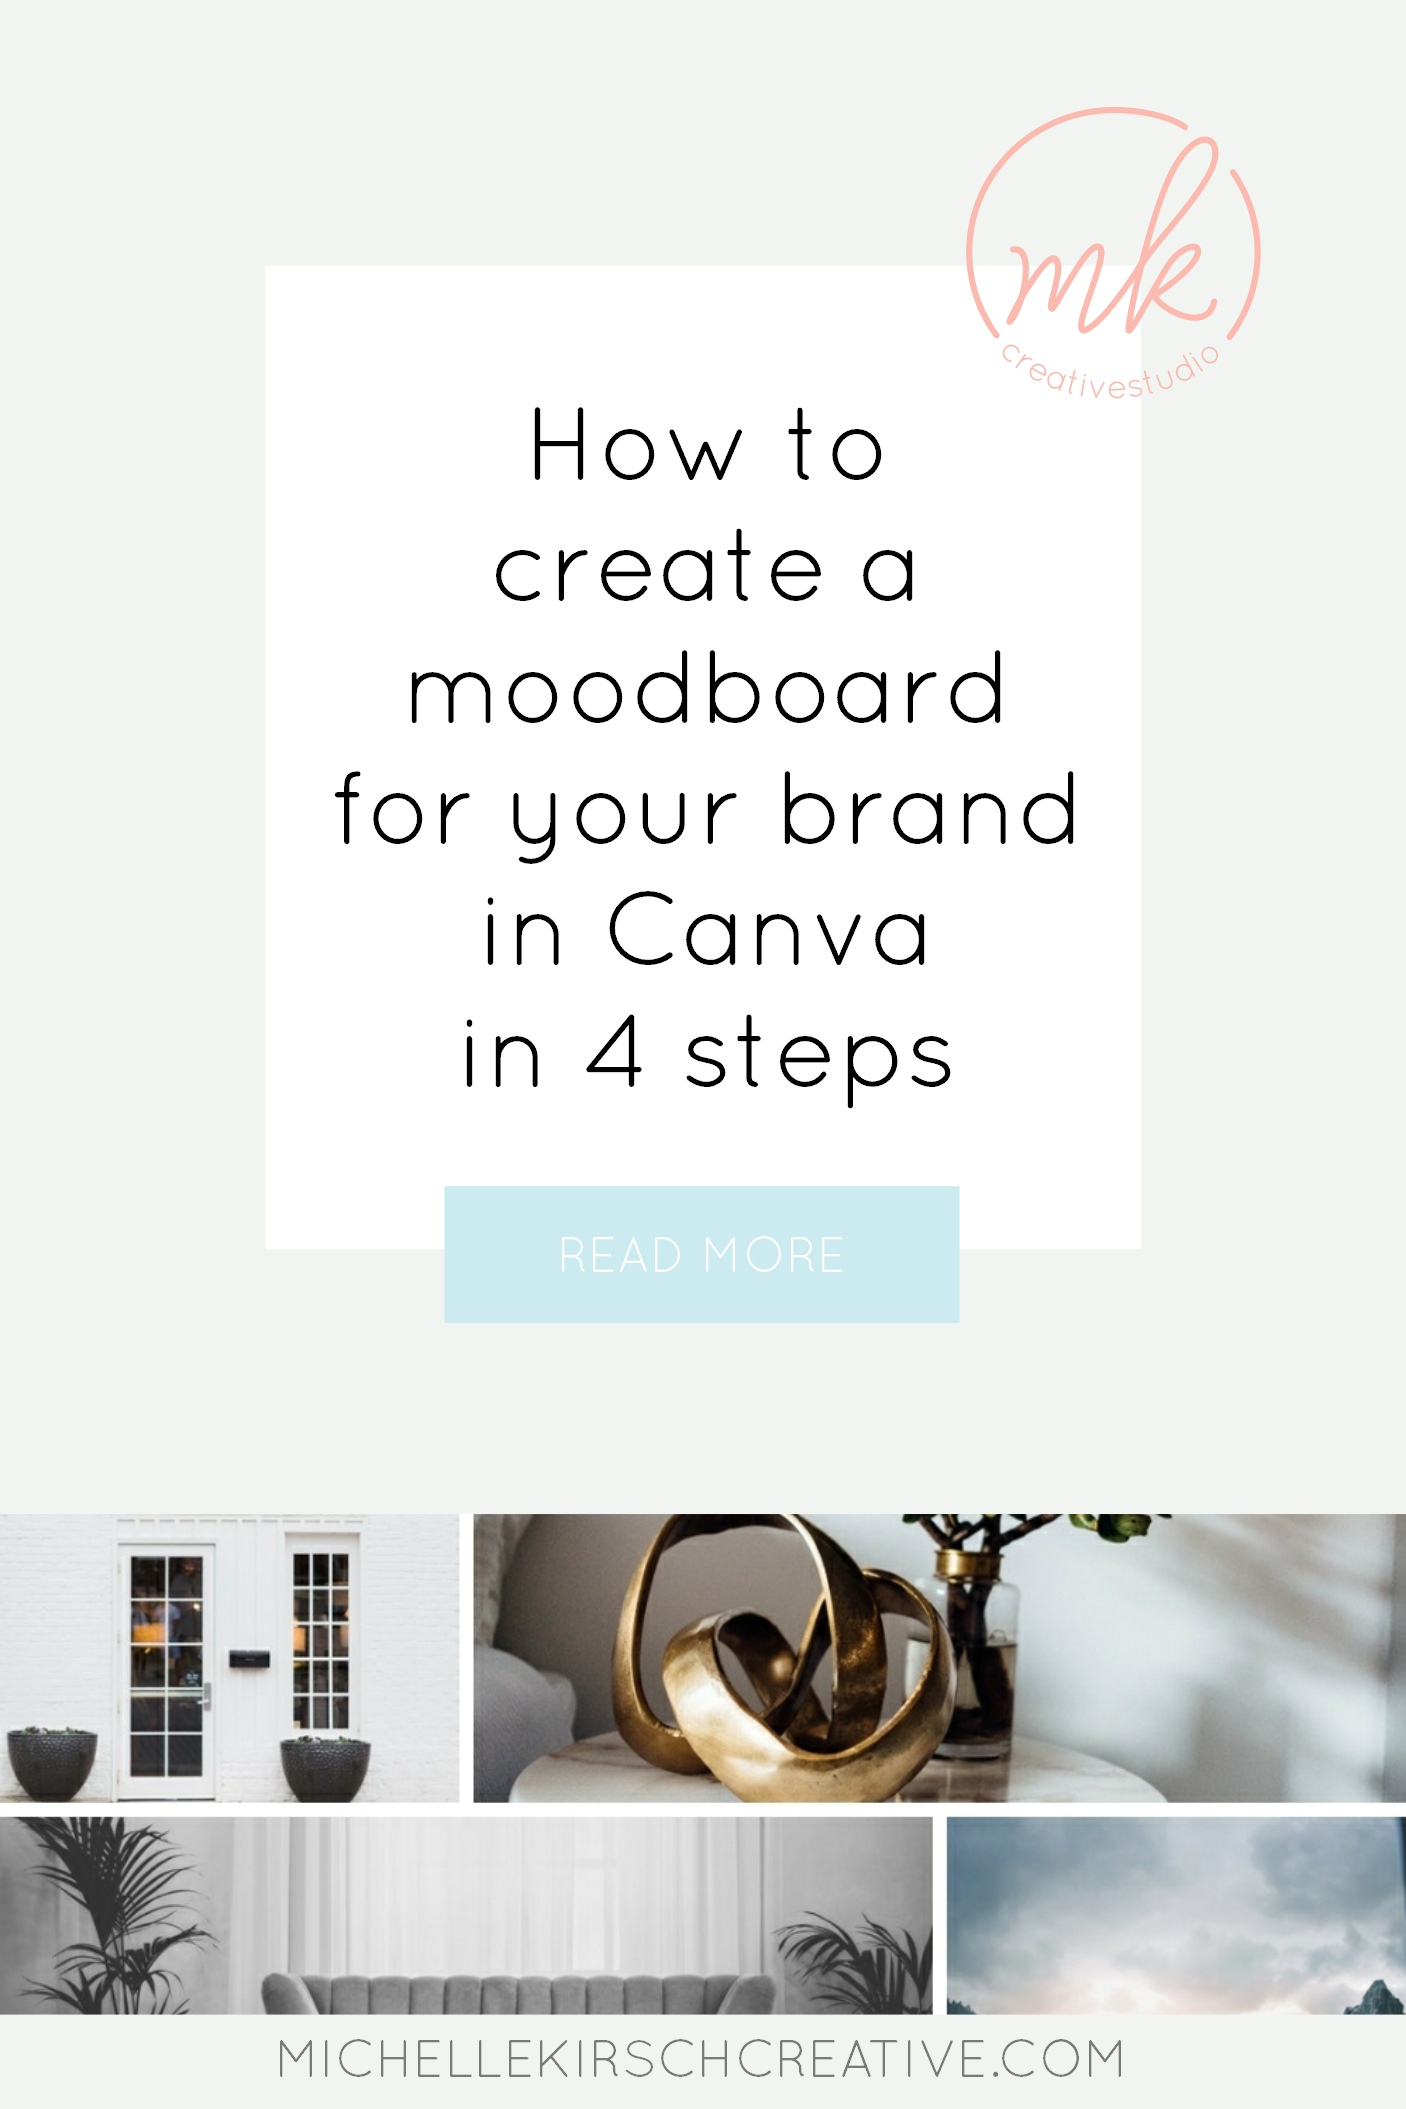 How to create a moodboard for your brand in Canva in 4 steps